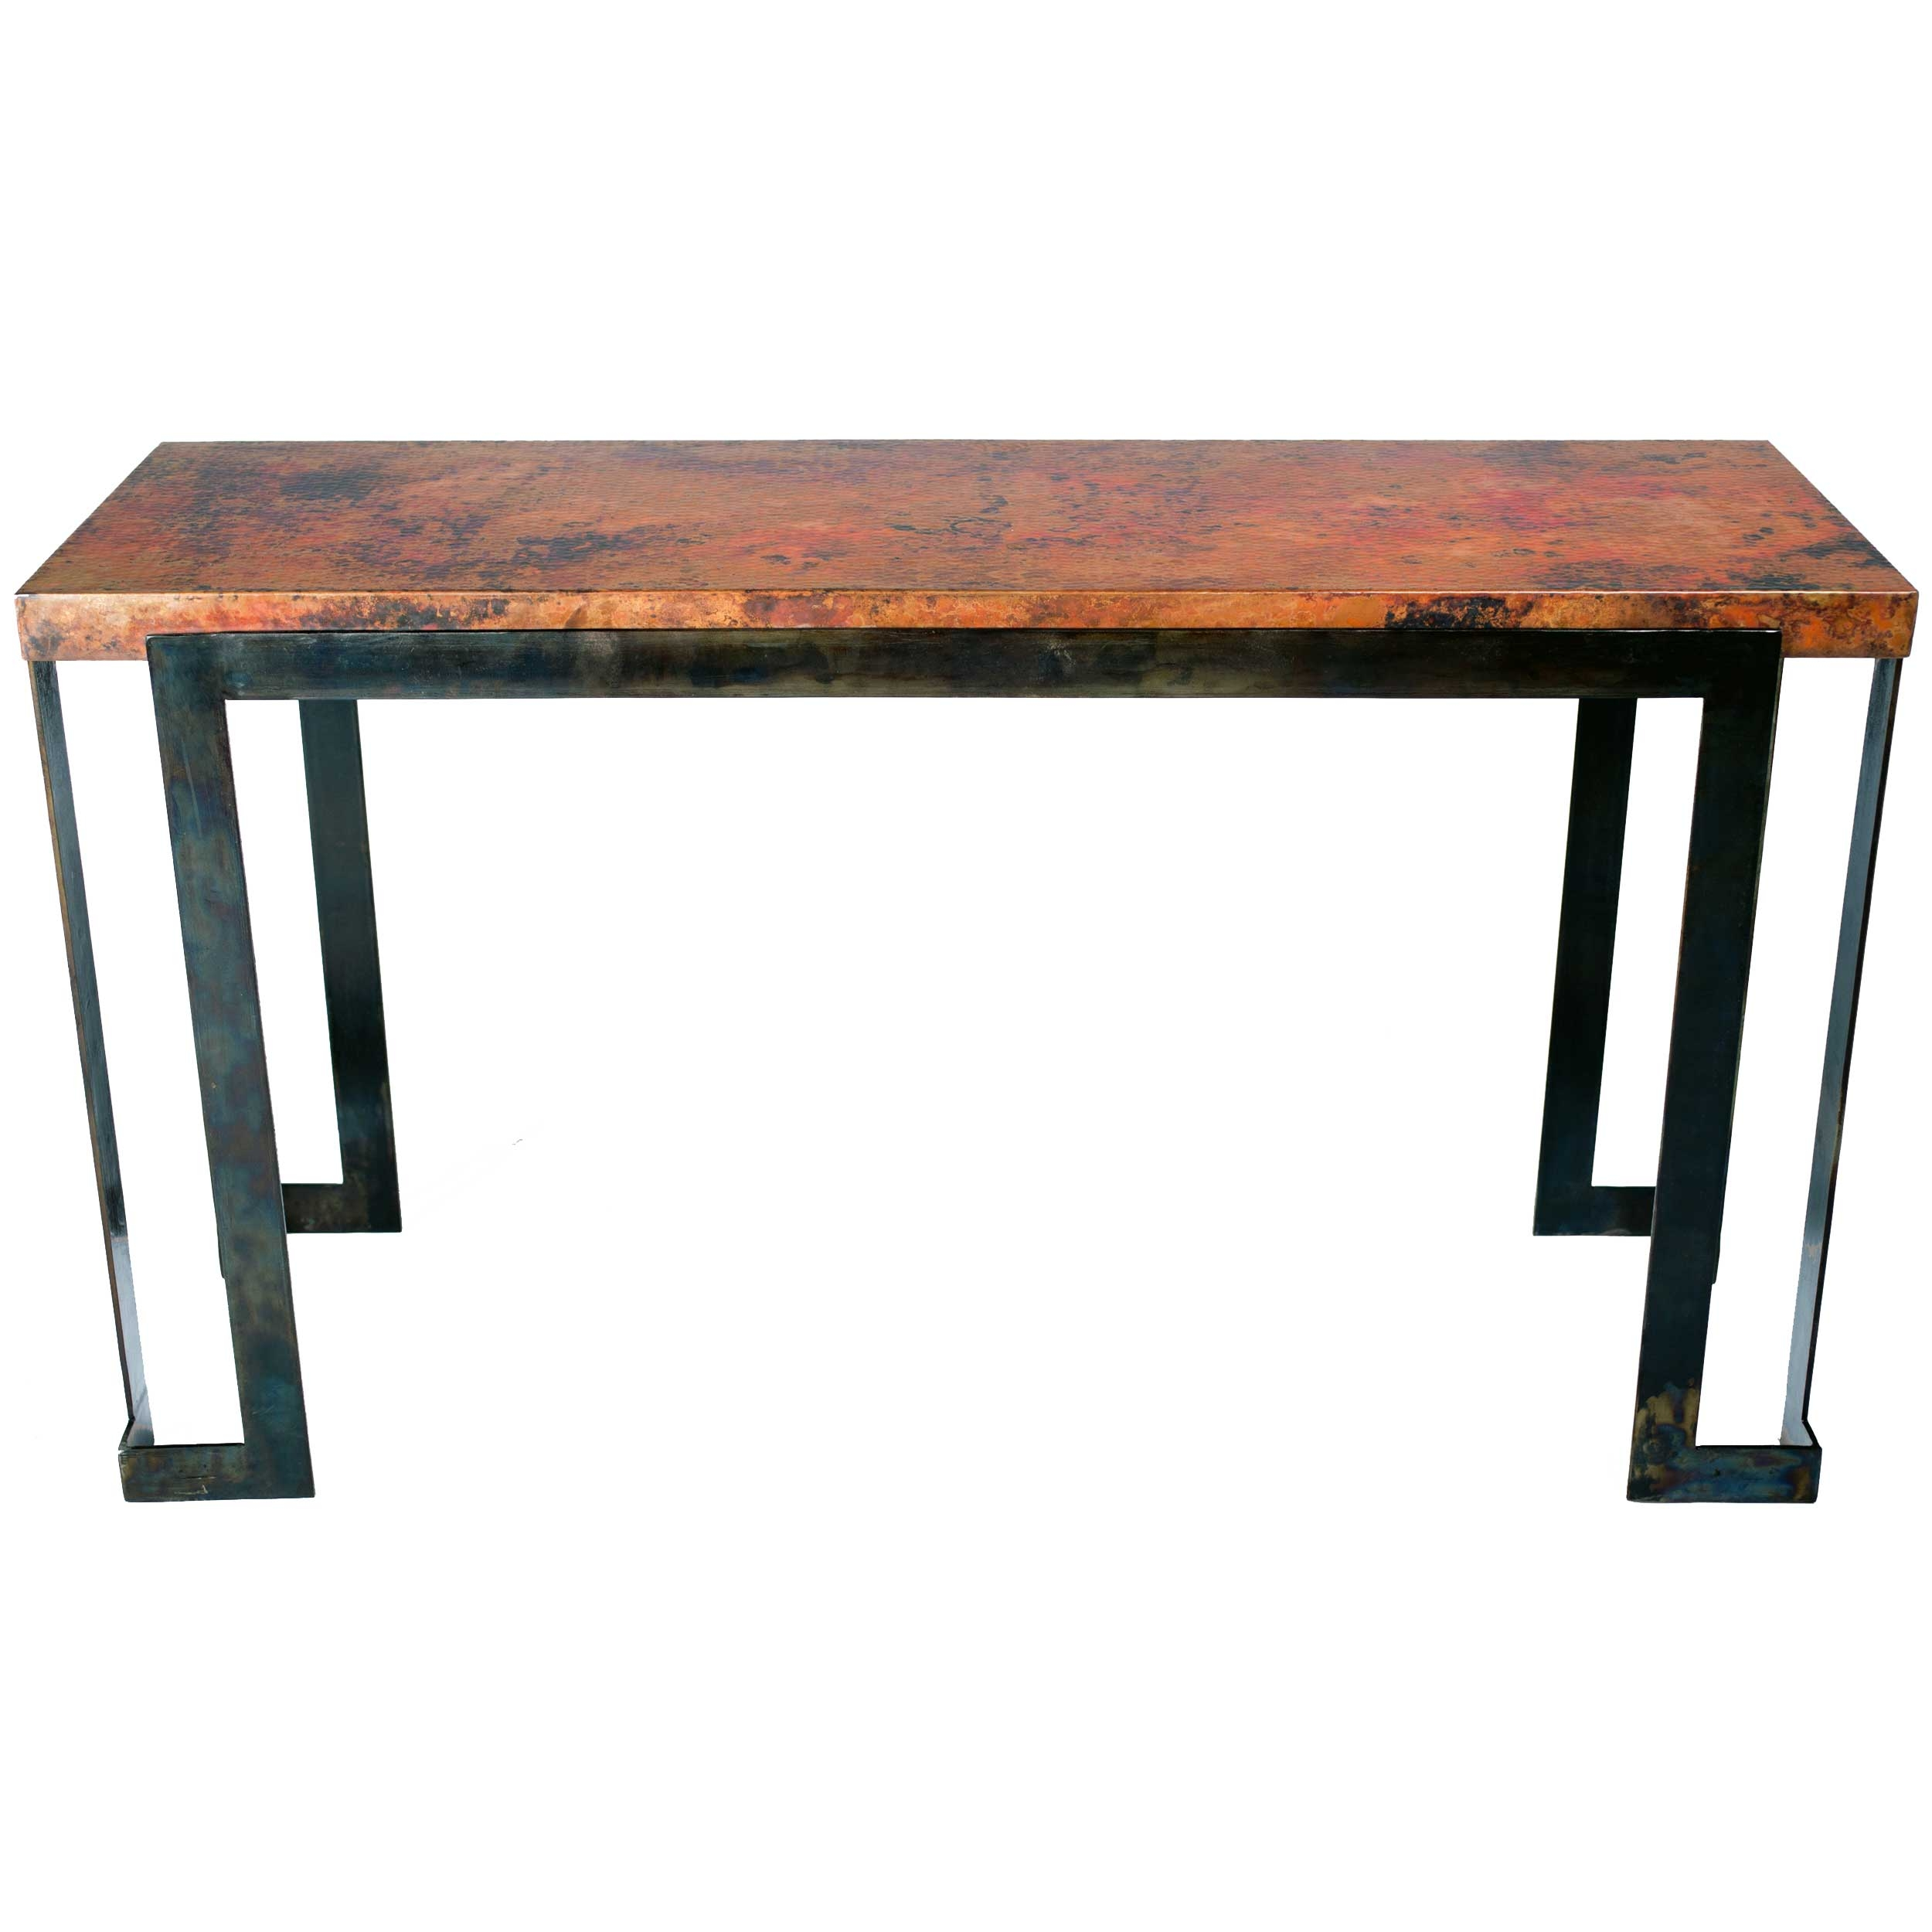 Wrought iron console tables sofa tables shop online pictured here is the steel strap console table with wrought iron base and hammered copper table geotapseo Choice Image